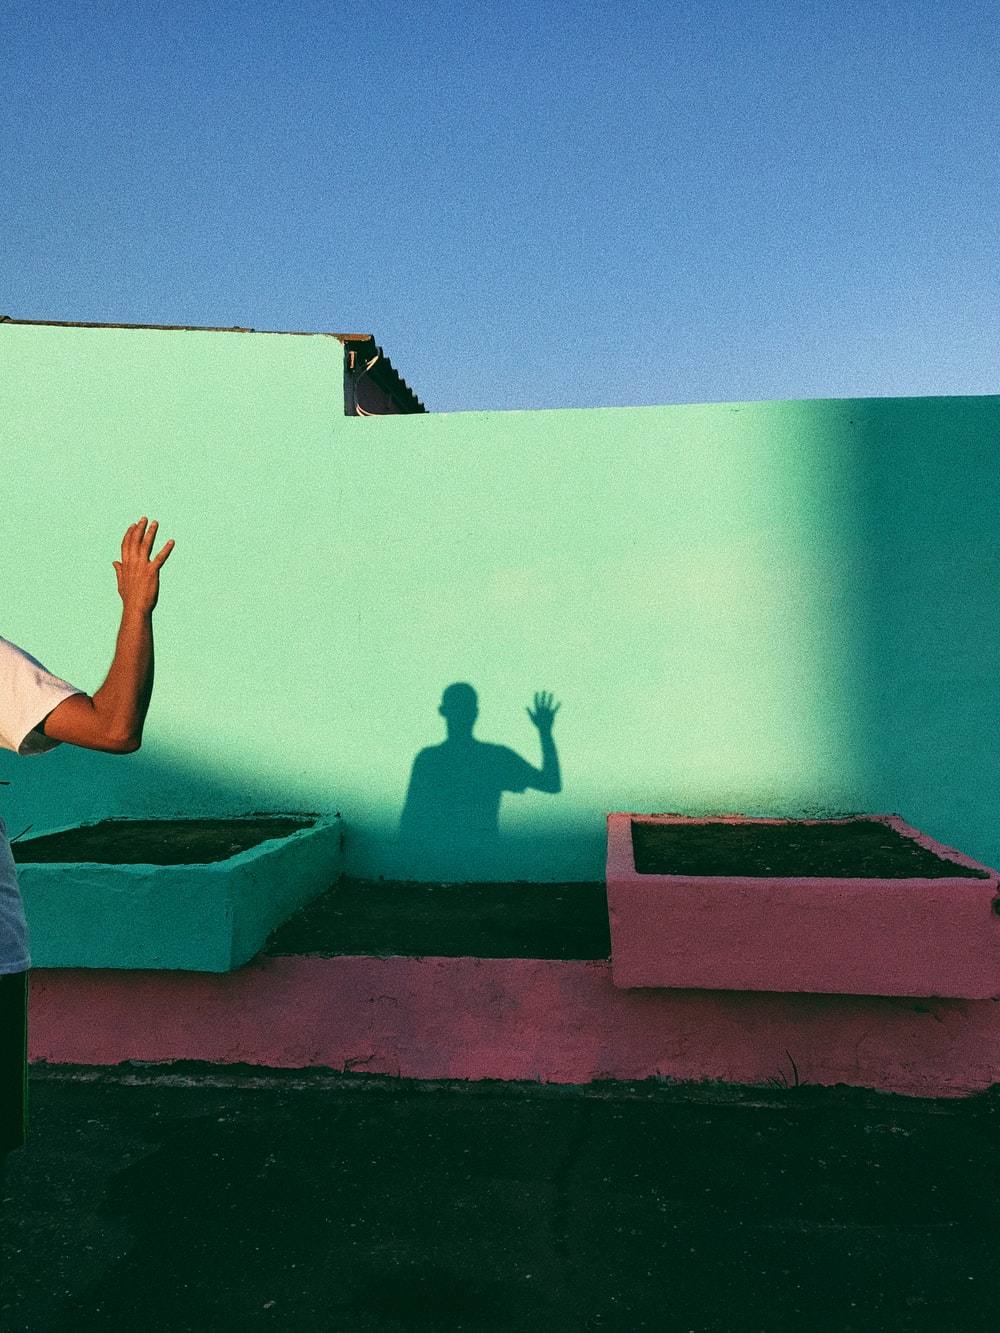 person waving reflecting shadow on teal wall paint